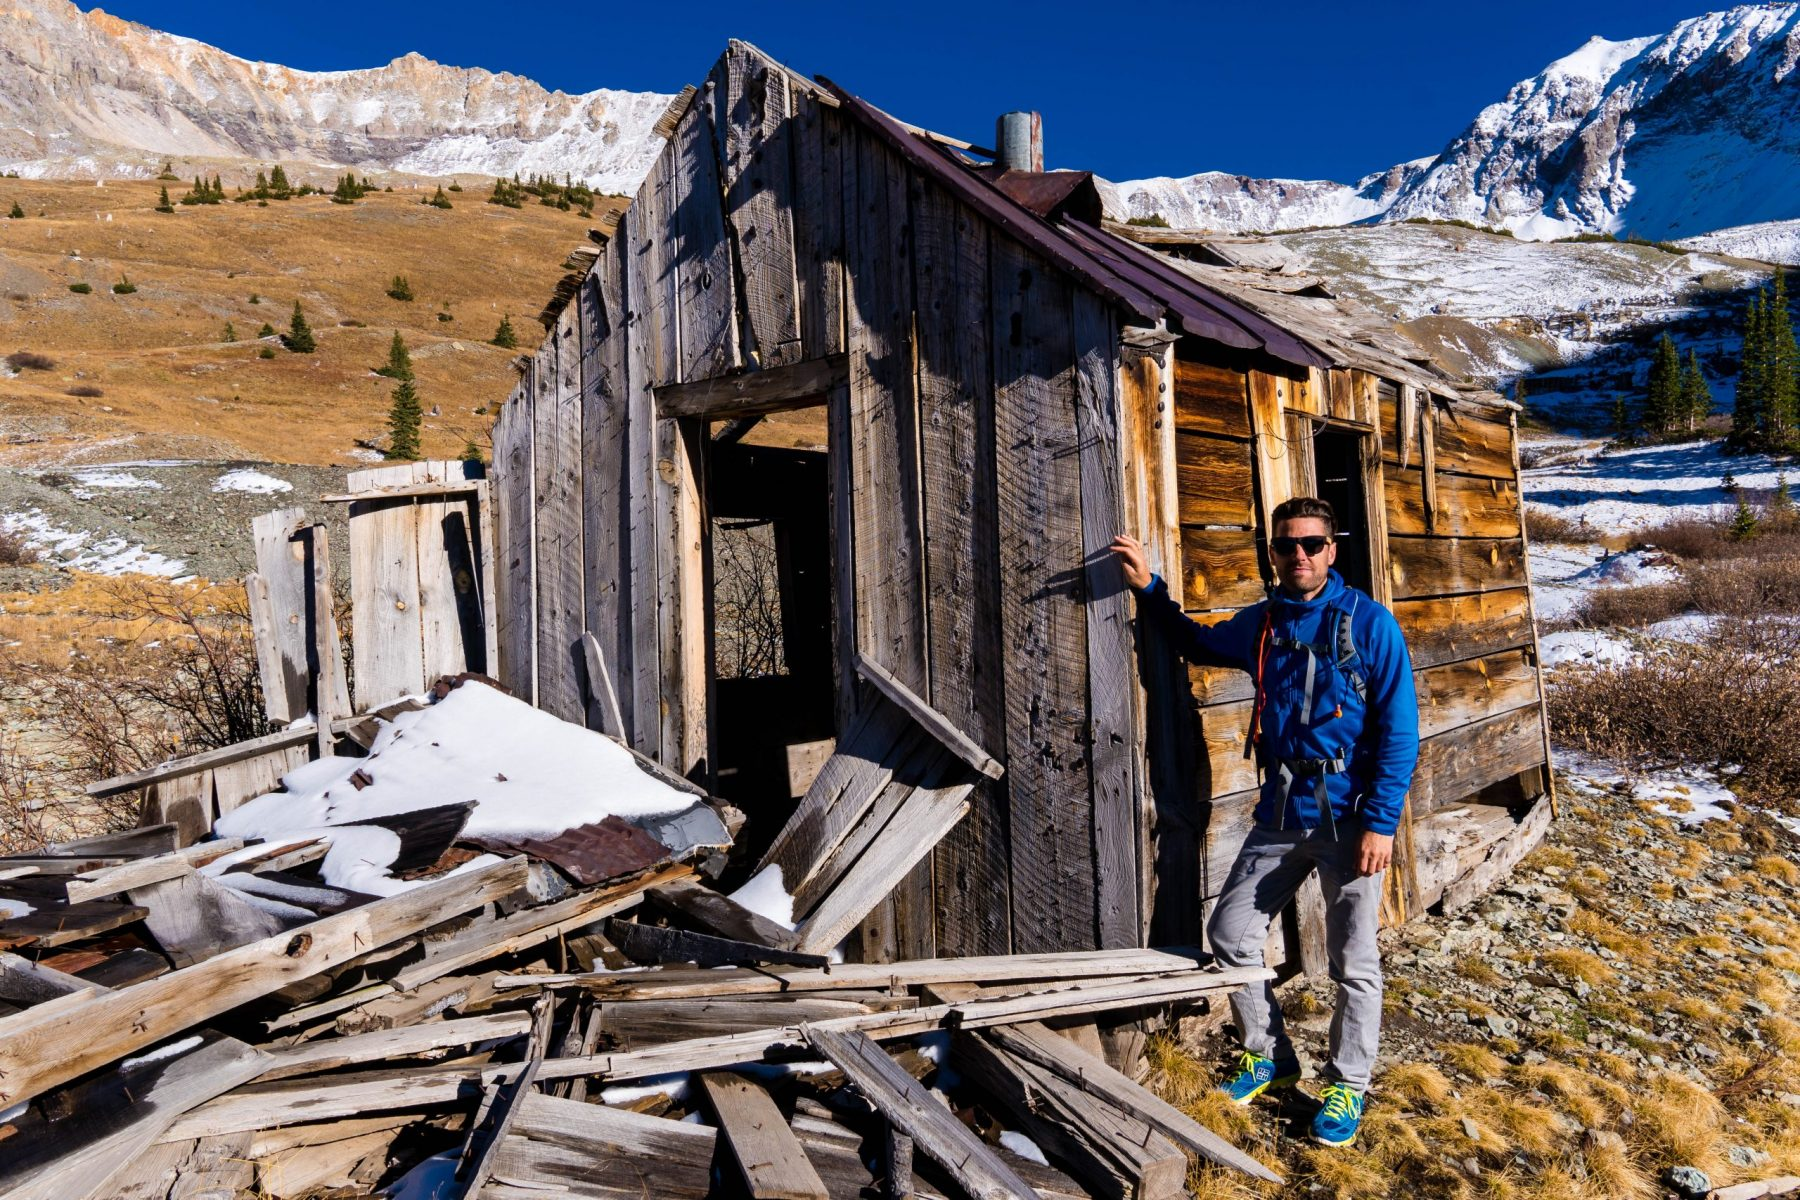 Off Roading Near Me >> The Tomboy Mine Ghost Town Near Telluride, Colorado - We Love to Explore